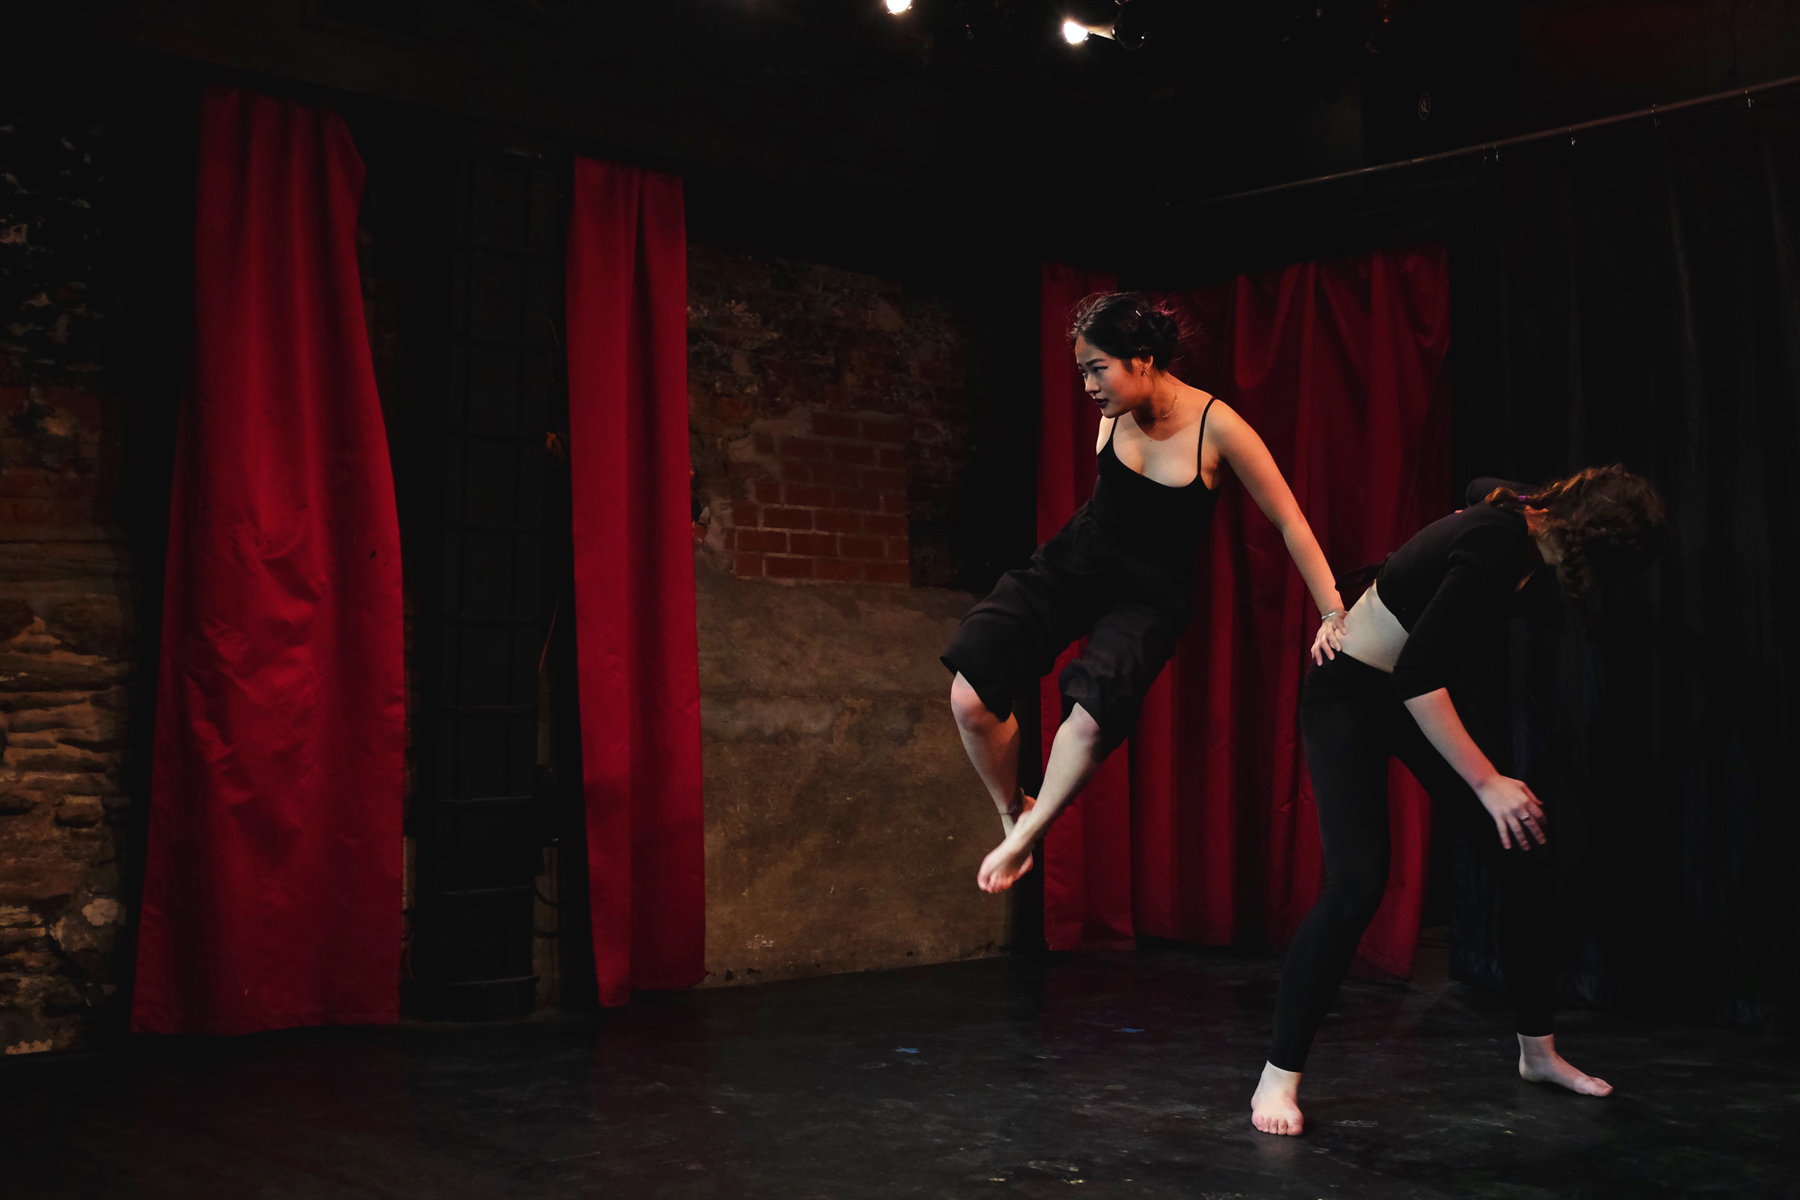 Choreography by Meaghan Adawe McLeod